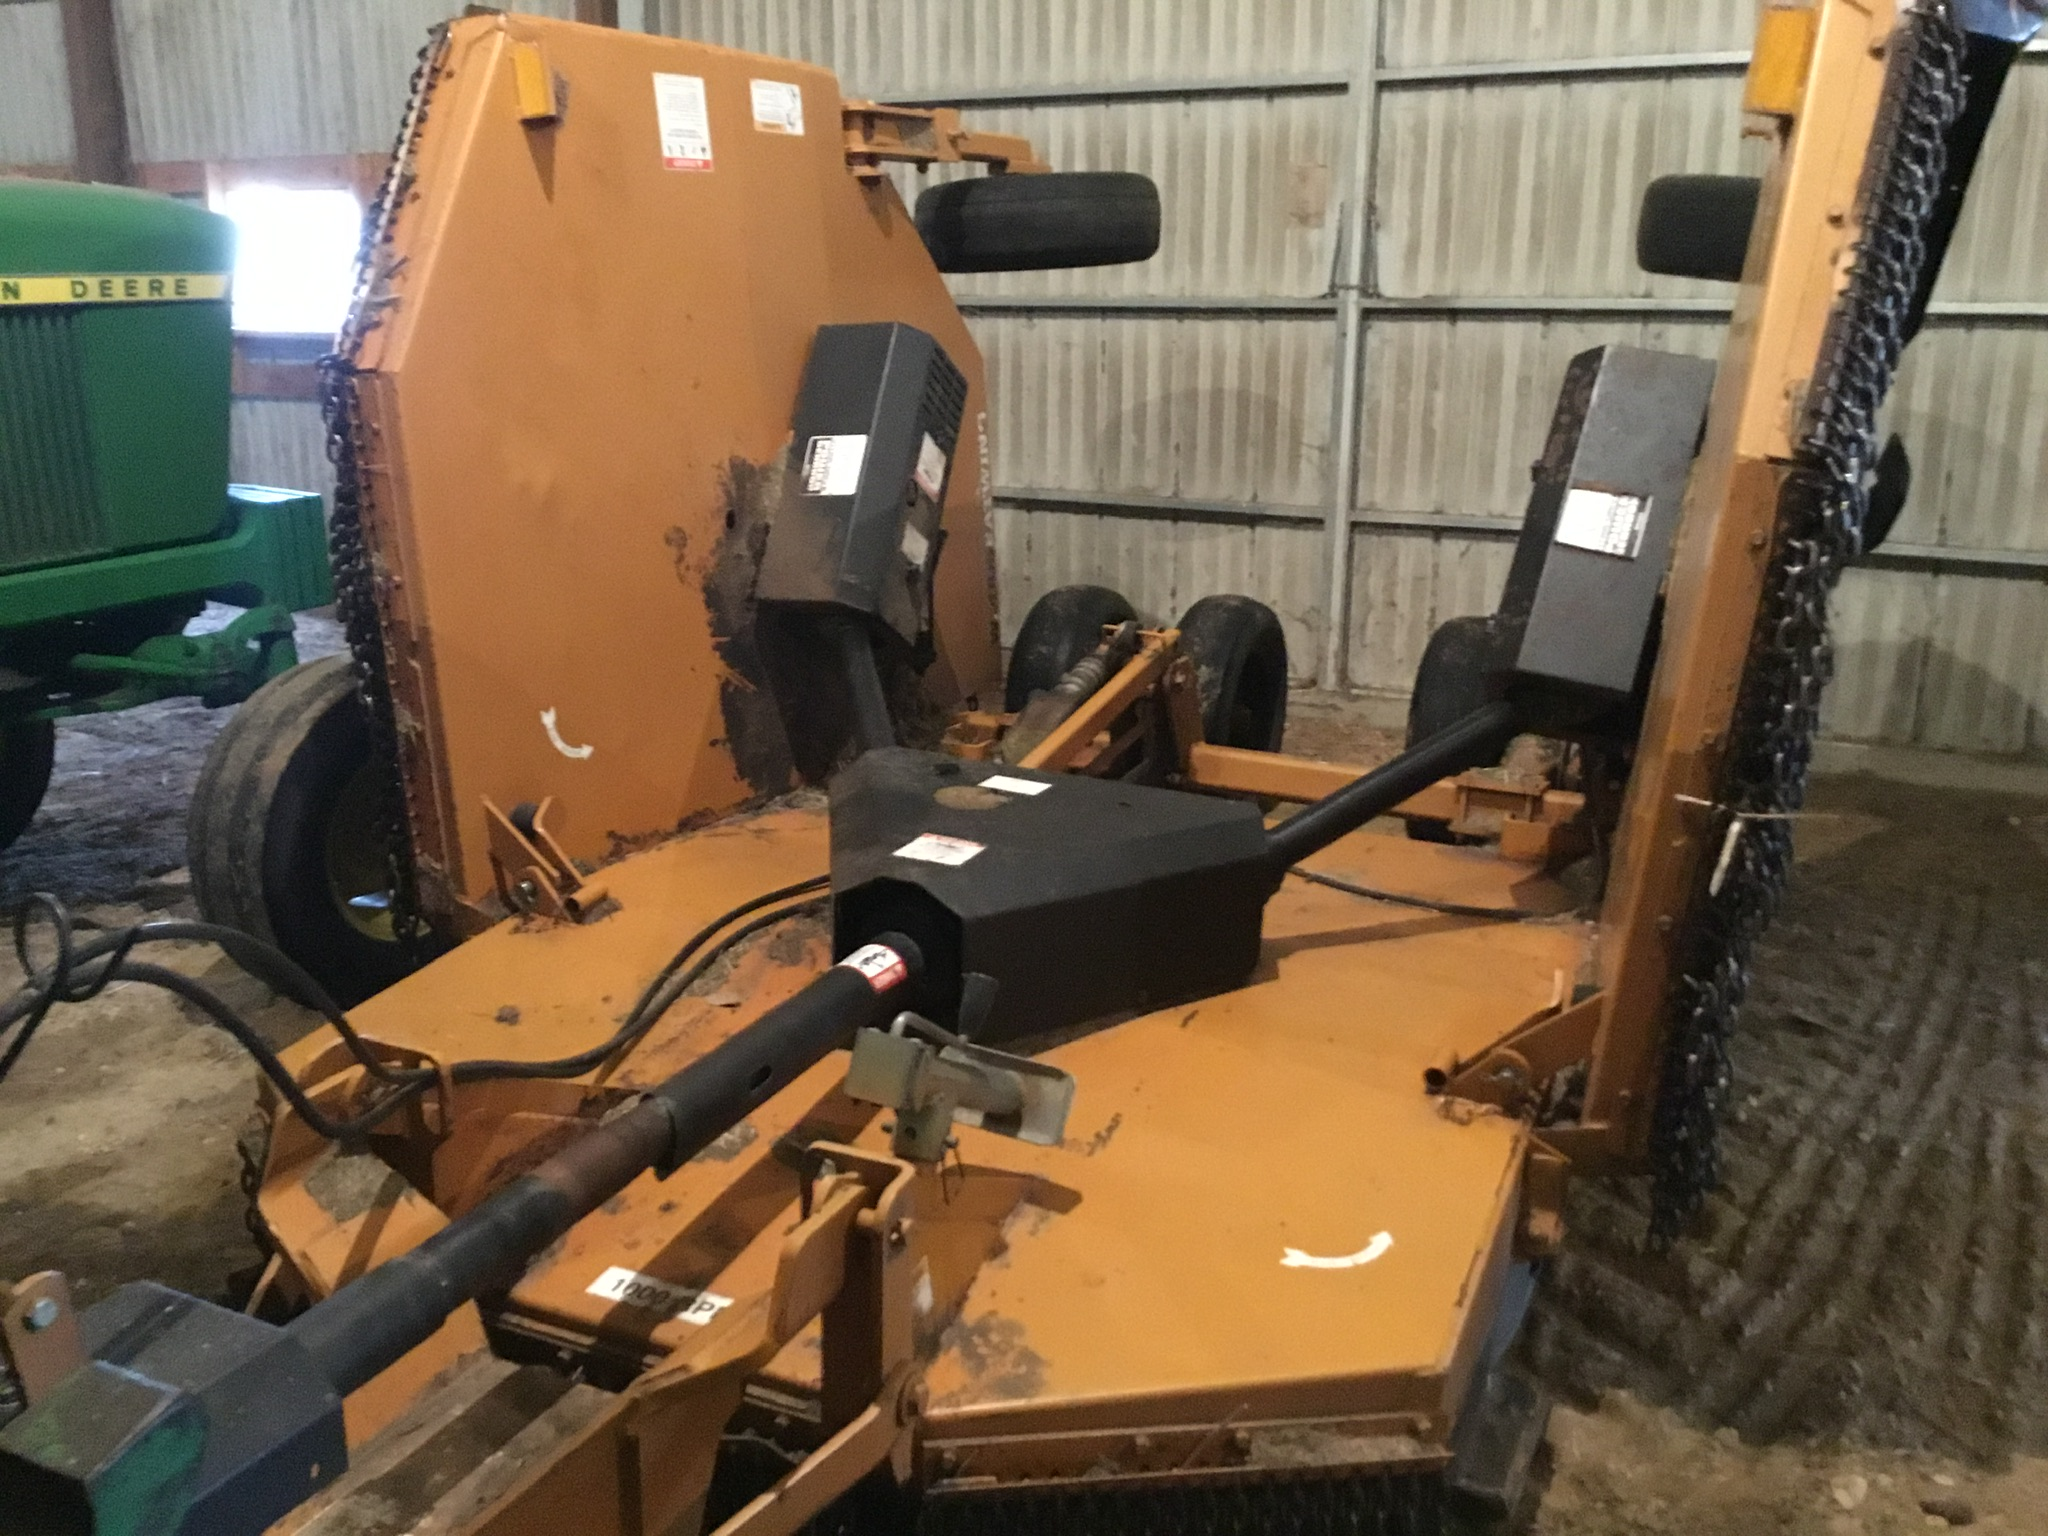 Woods 9309 Bat Wing Mower, 15Ft., 1,000 PTO, Chains, 6 Aircraft Tires, Serial #745029